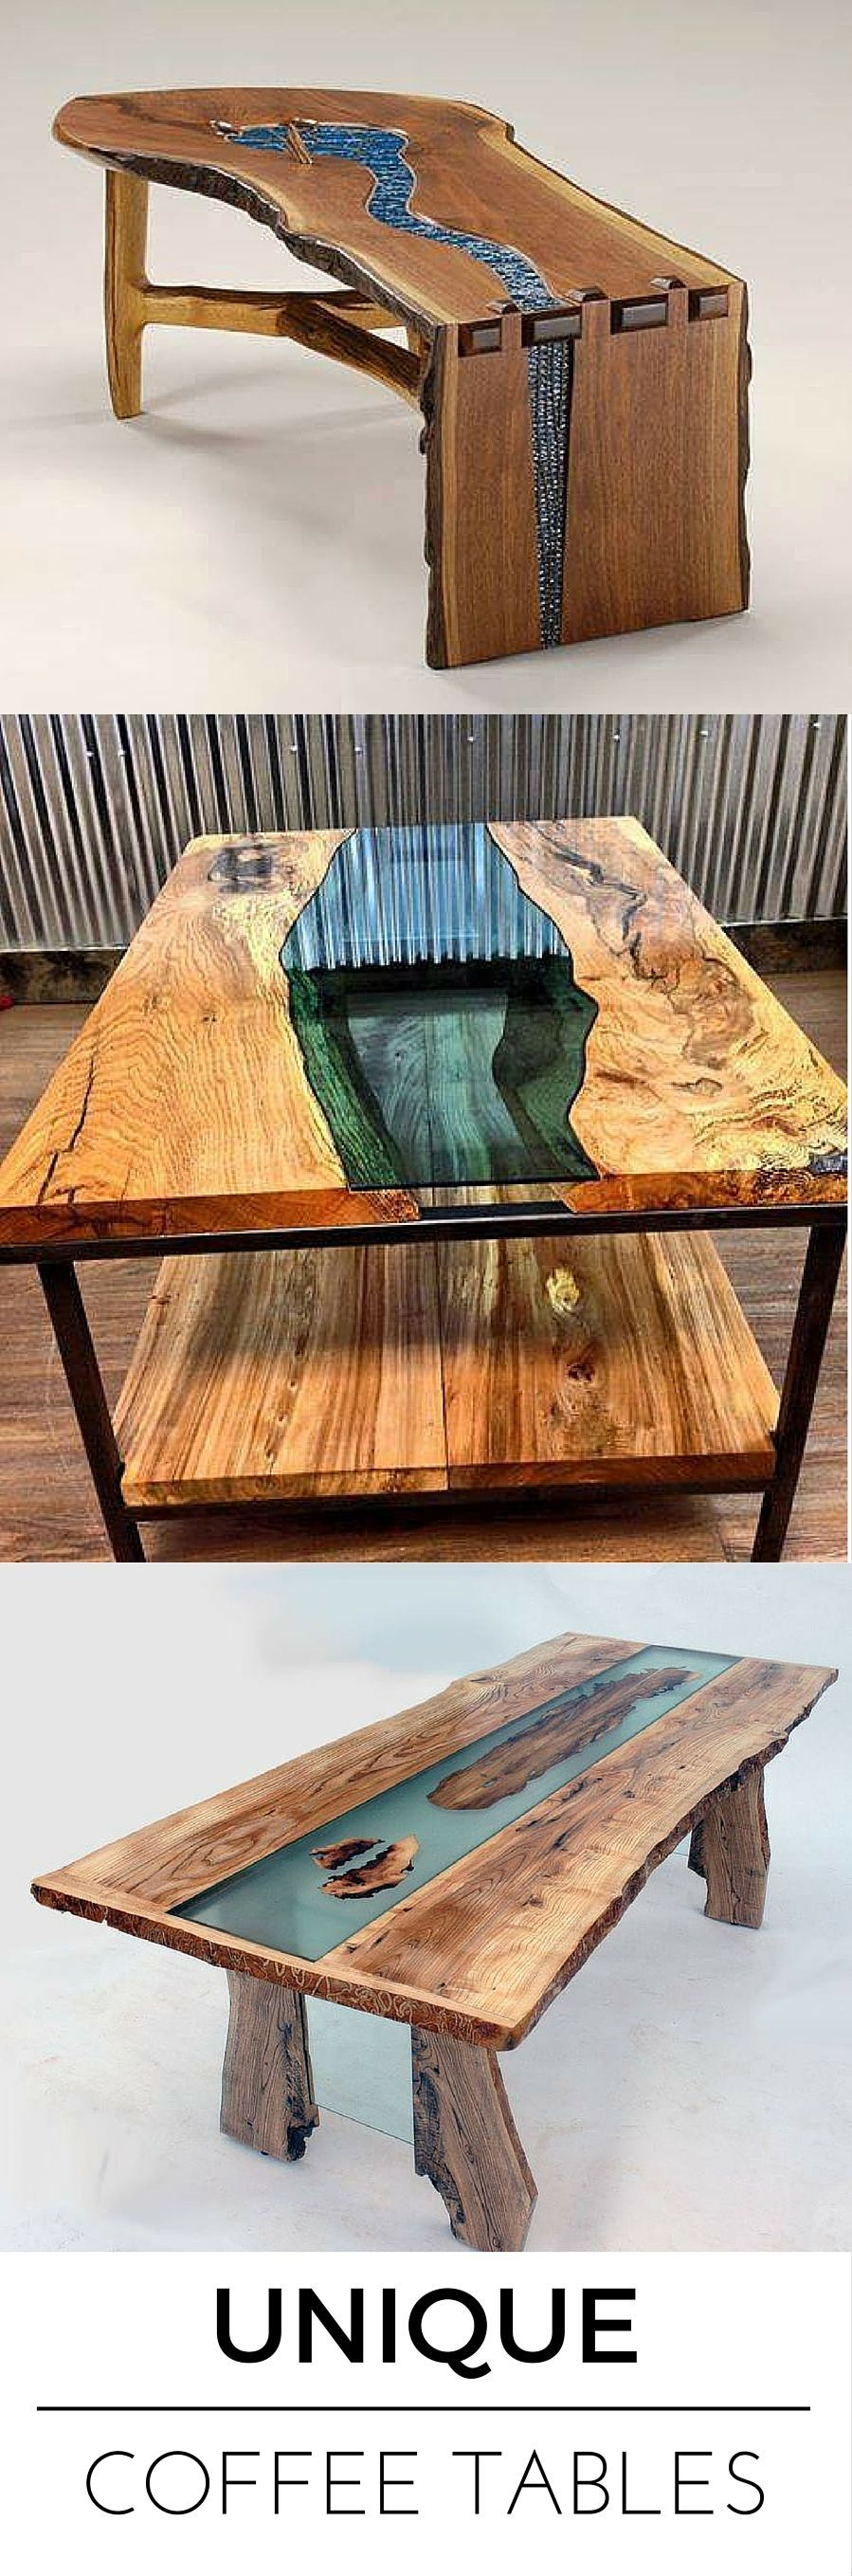 100 Unique Coffee Tables Styling Ideas For Your Living Room Wood Unique Coffee Table Design Wooden Coffee Table Rustic Coffee Tables [ 2717 x 899 Pixel ]